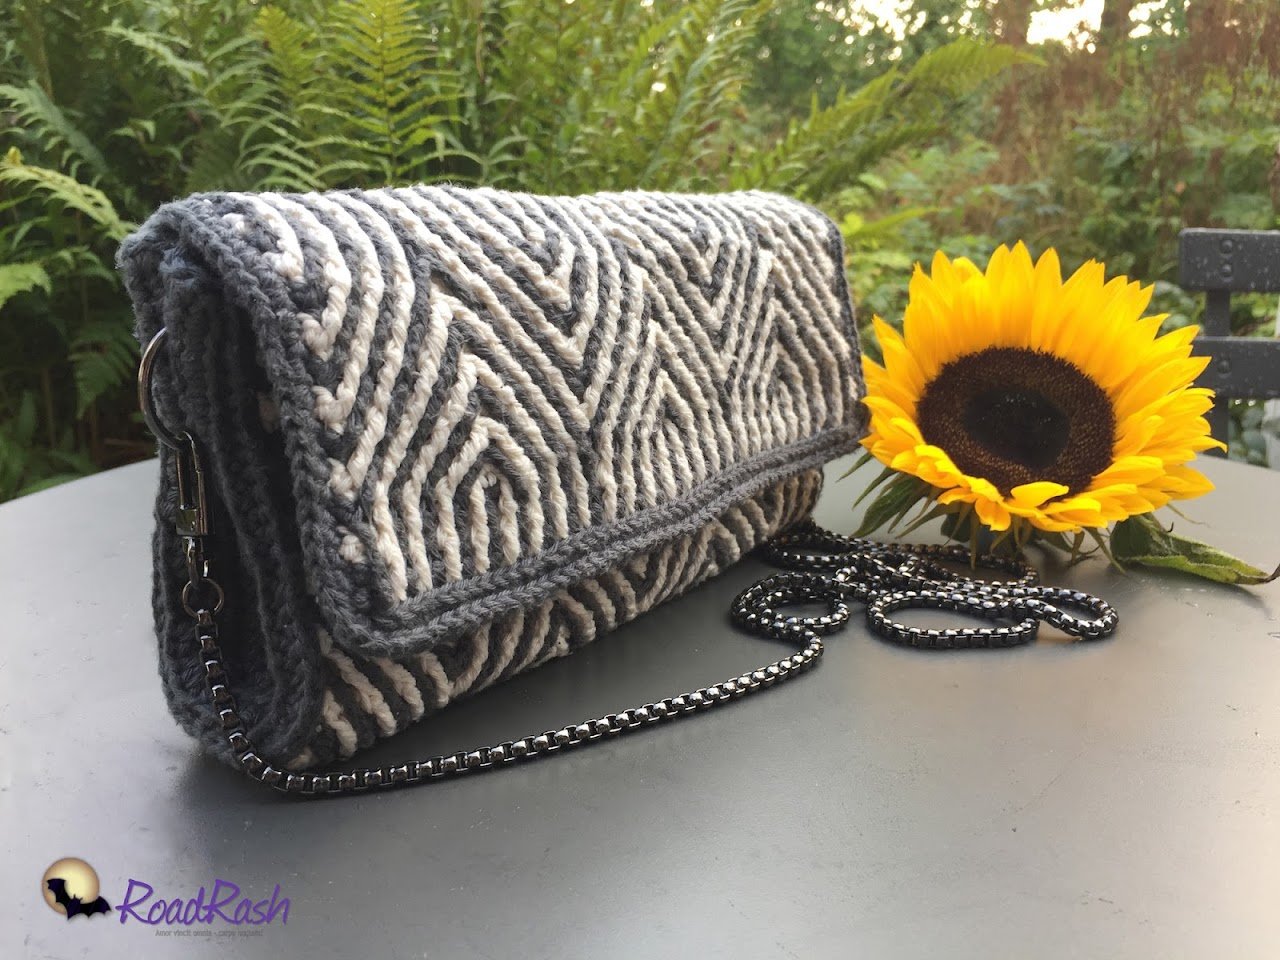 Zebra crochet clutch by Hilde Tindlund.